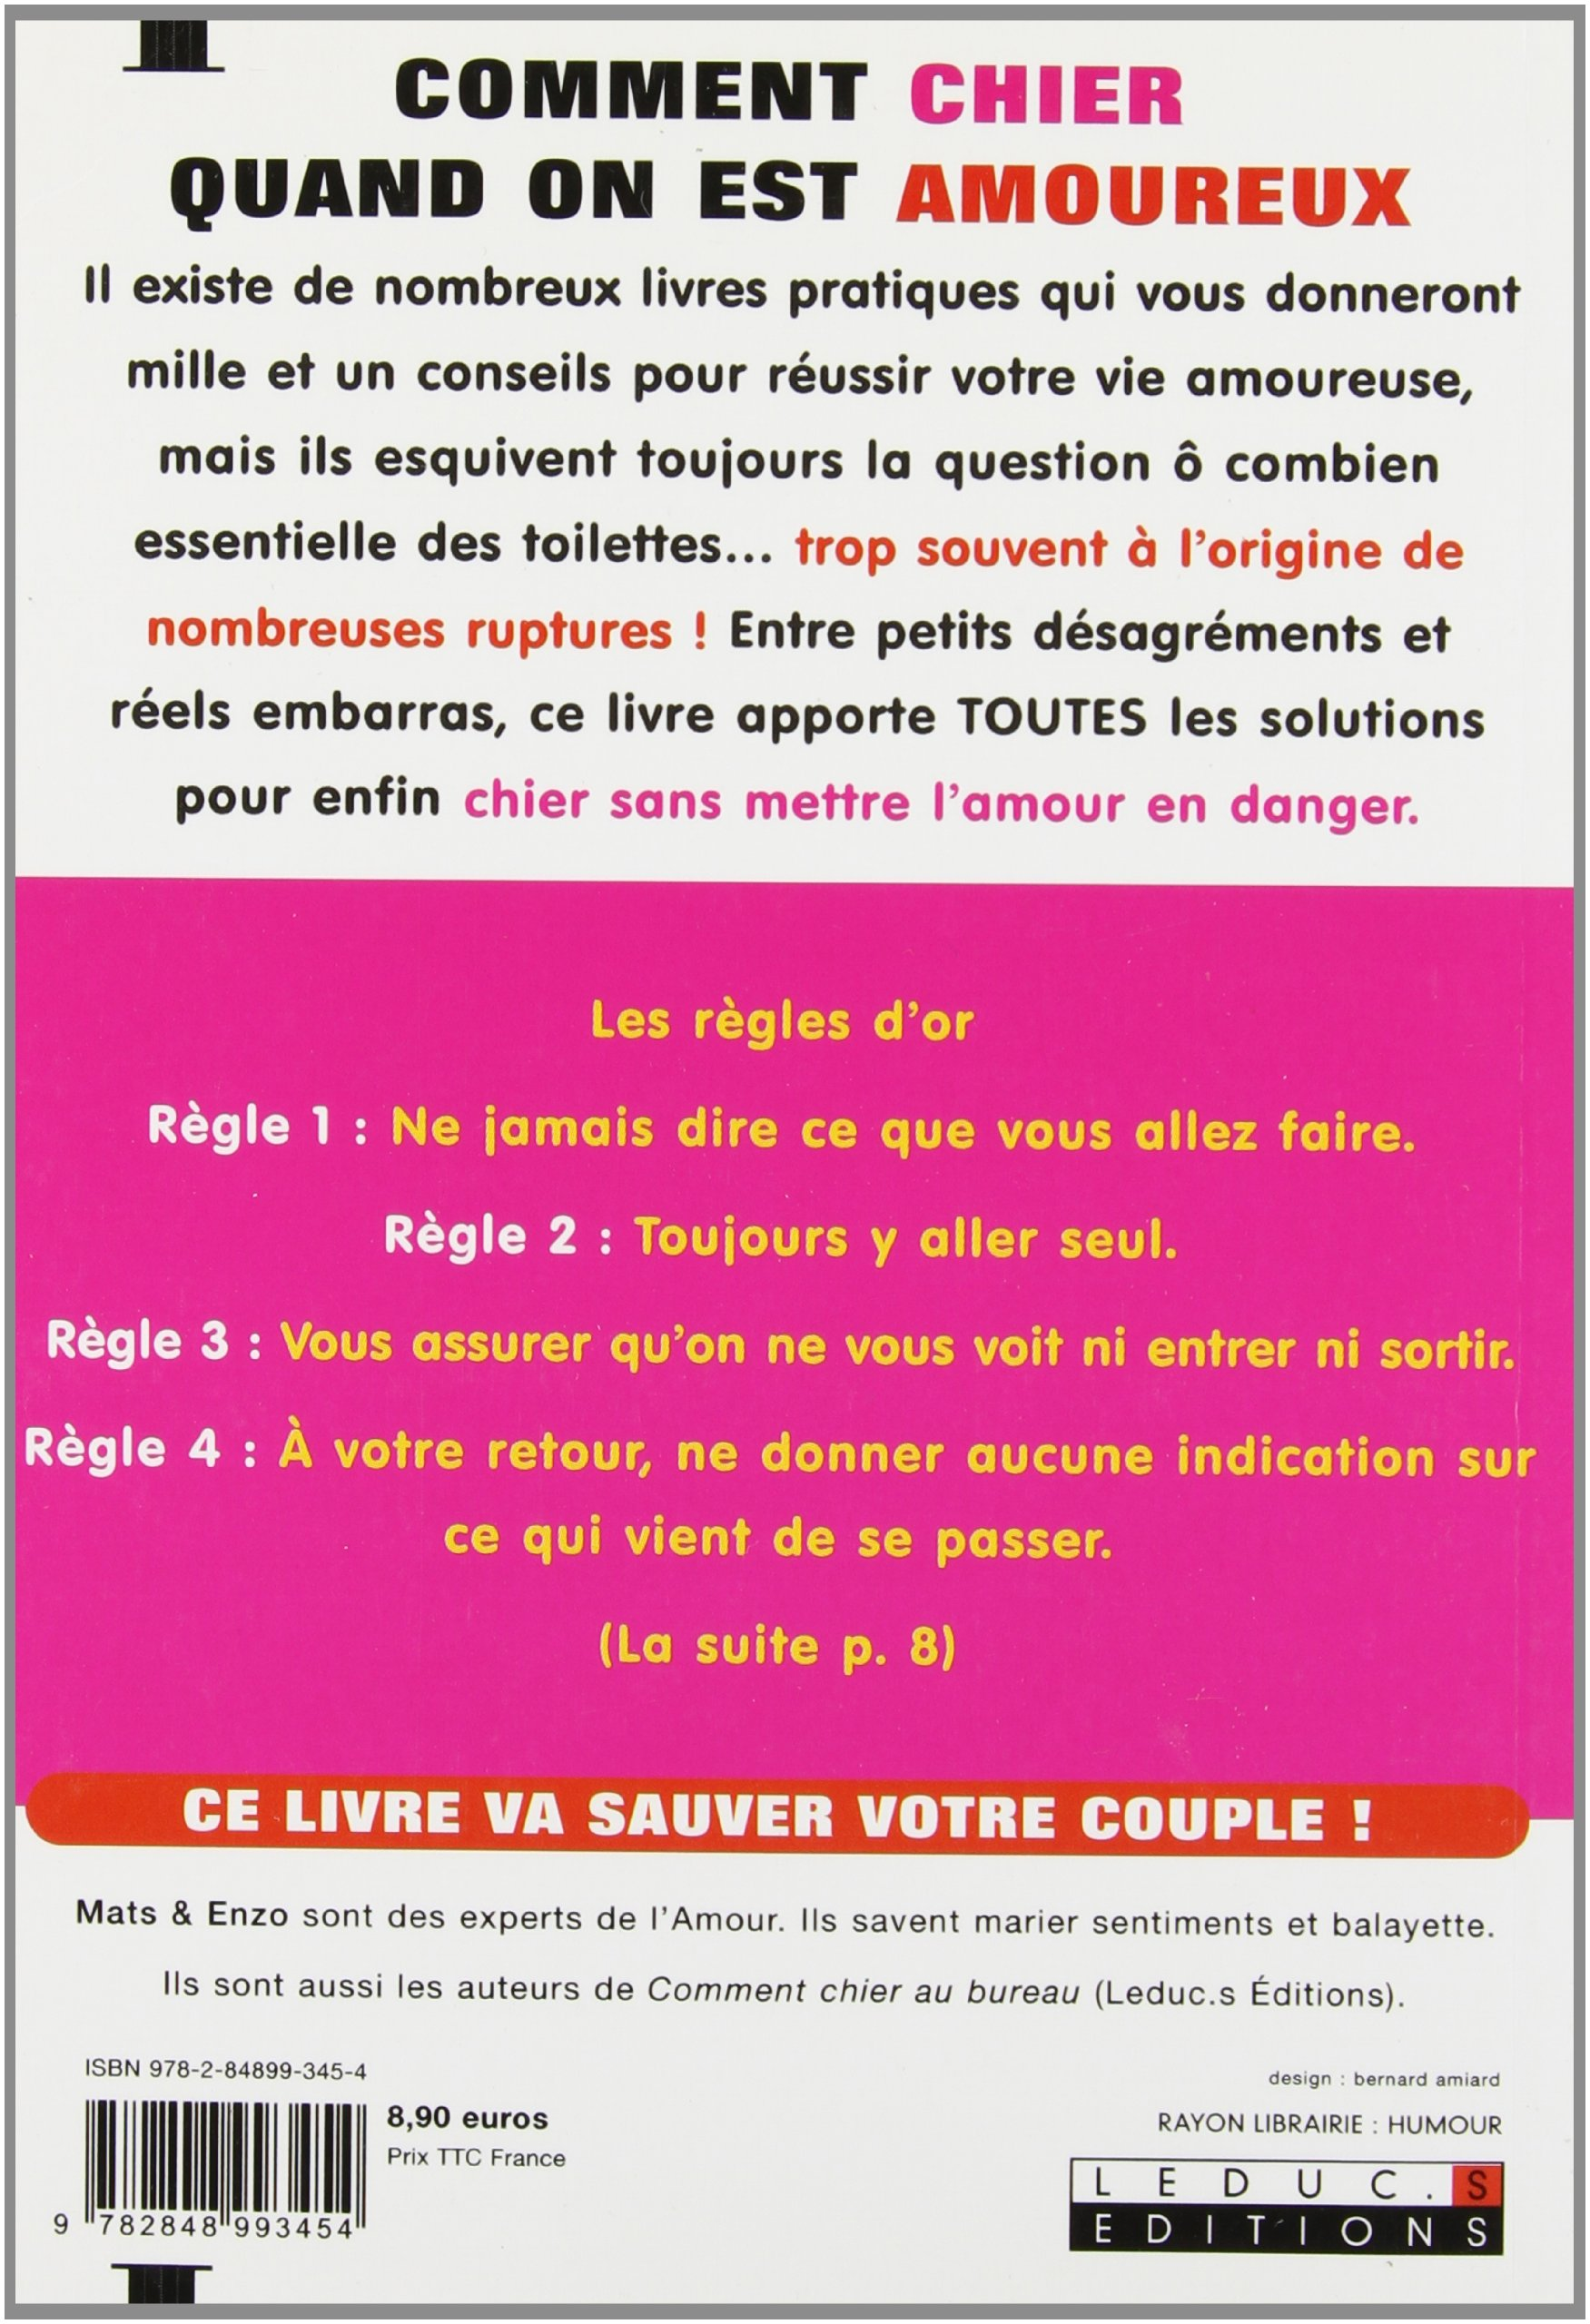 Comment chier quand on est amoureux pdf [PUNIQRANDLINE-(au-dating-names.txt) 54